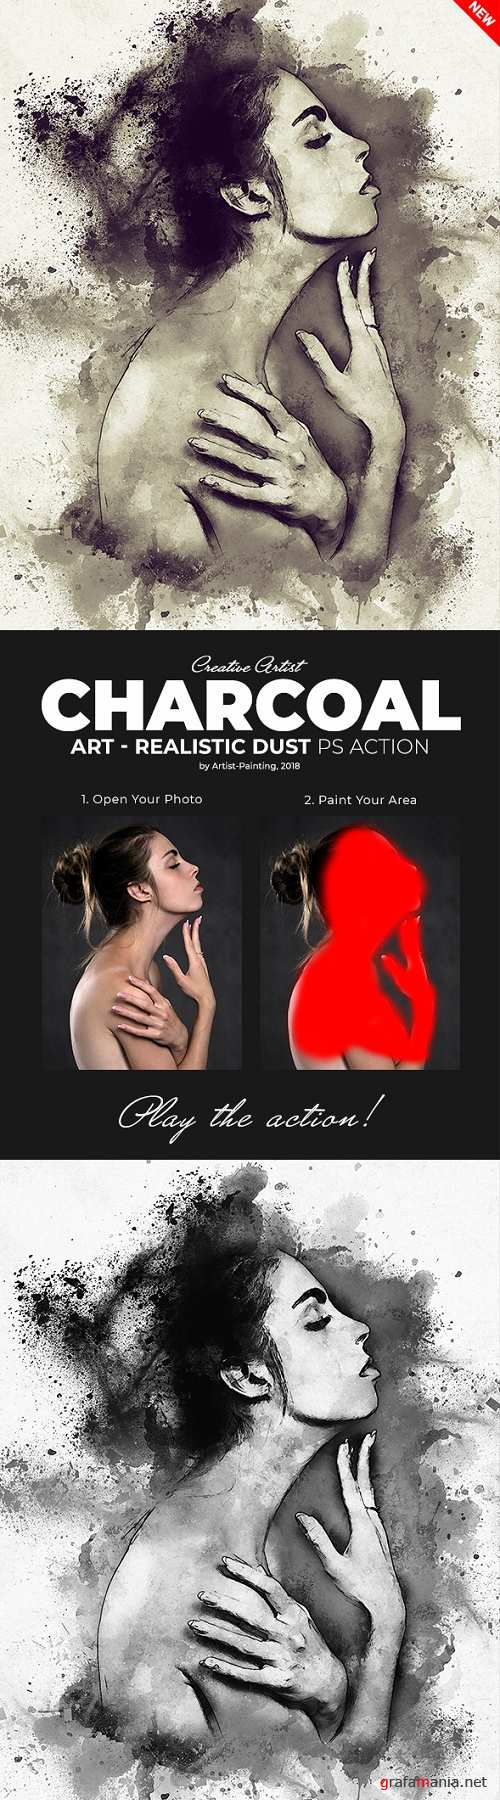 Charcoal Art – Realistic Dust Photoshop Action 21675797